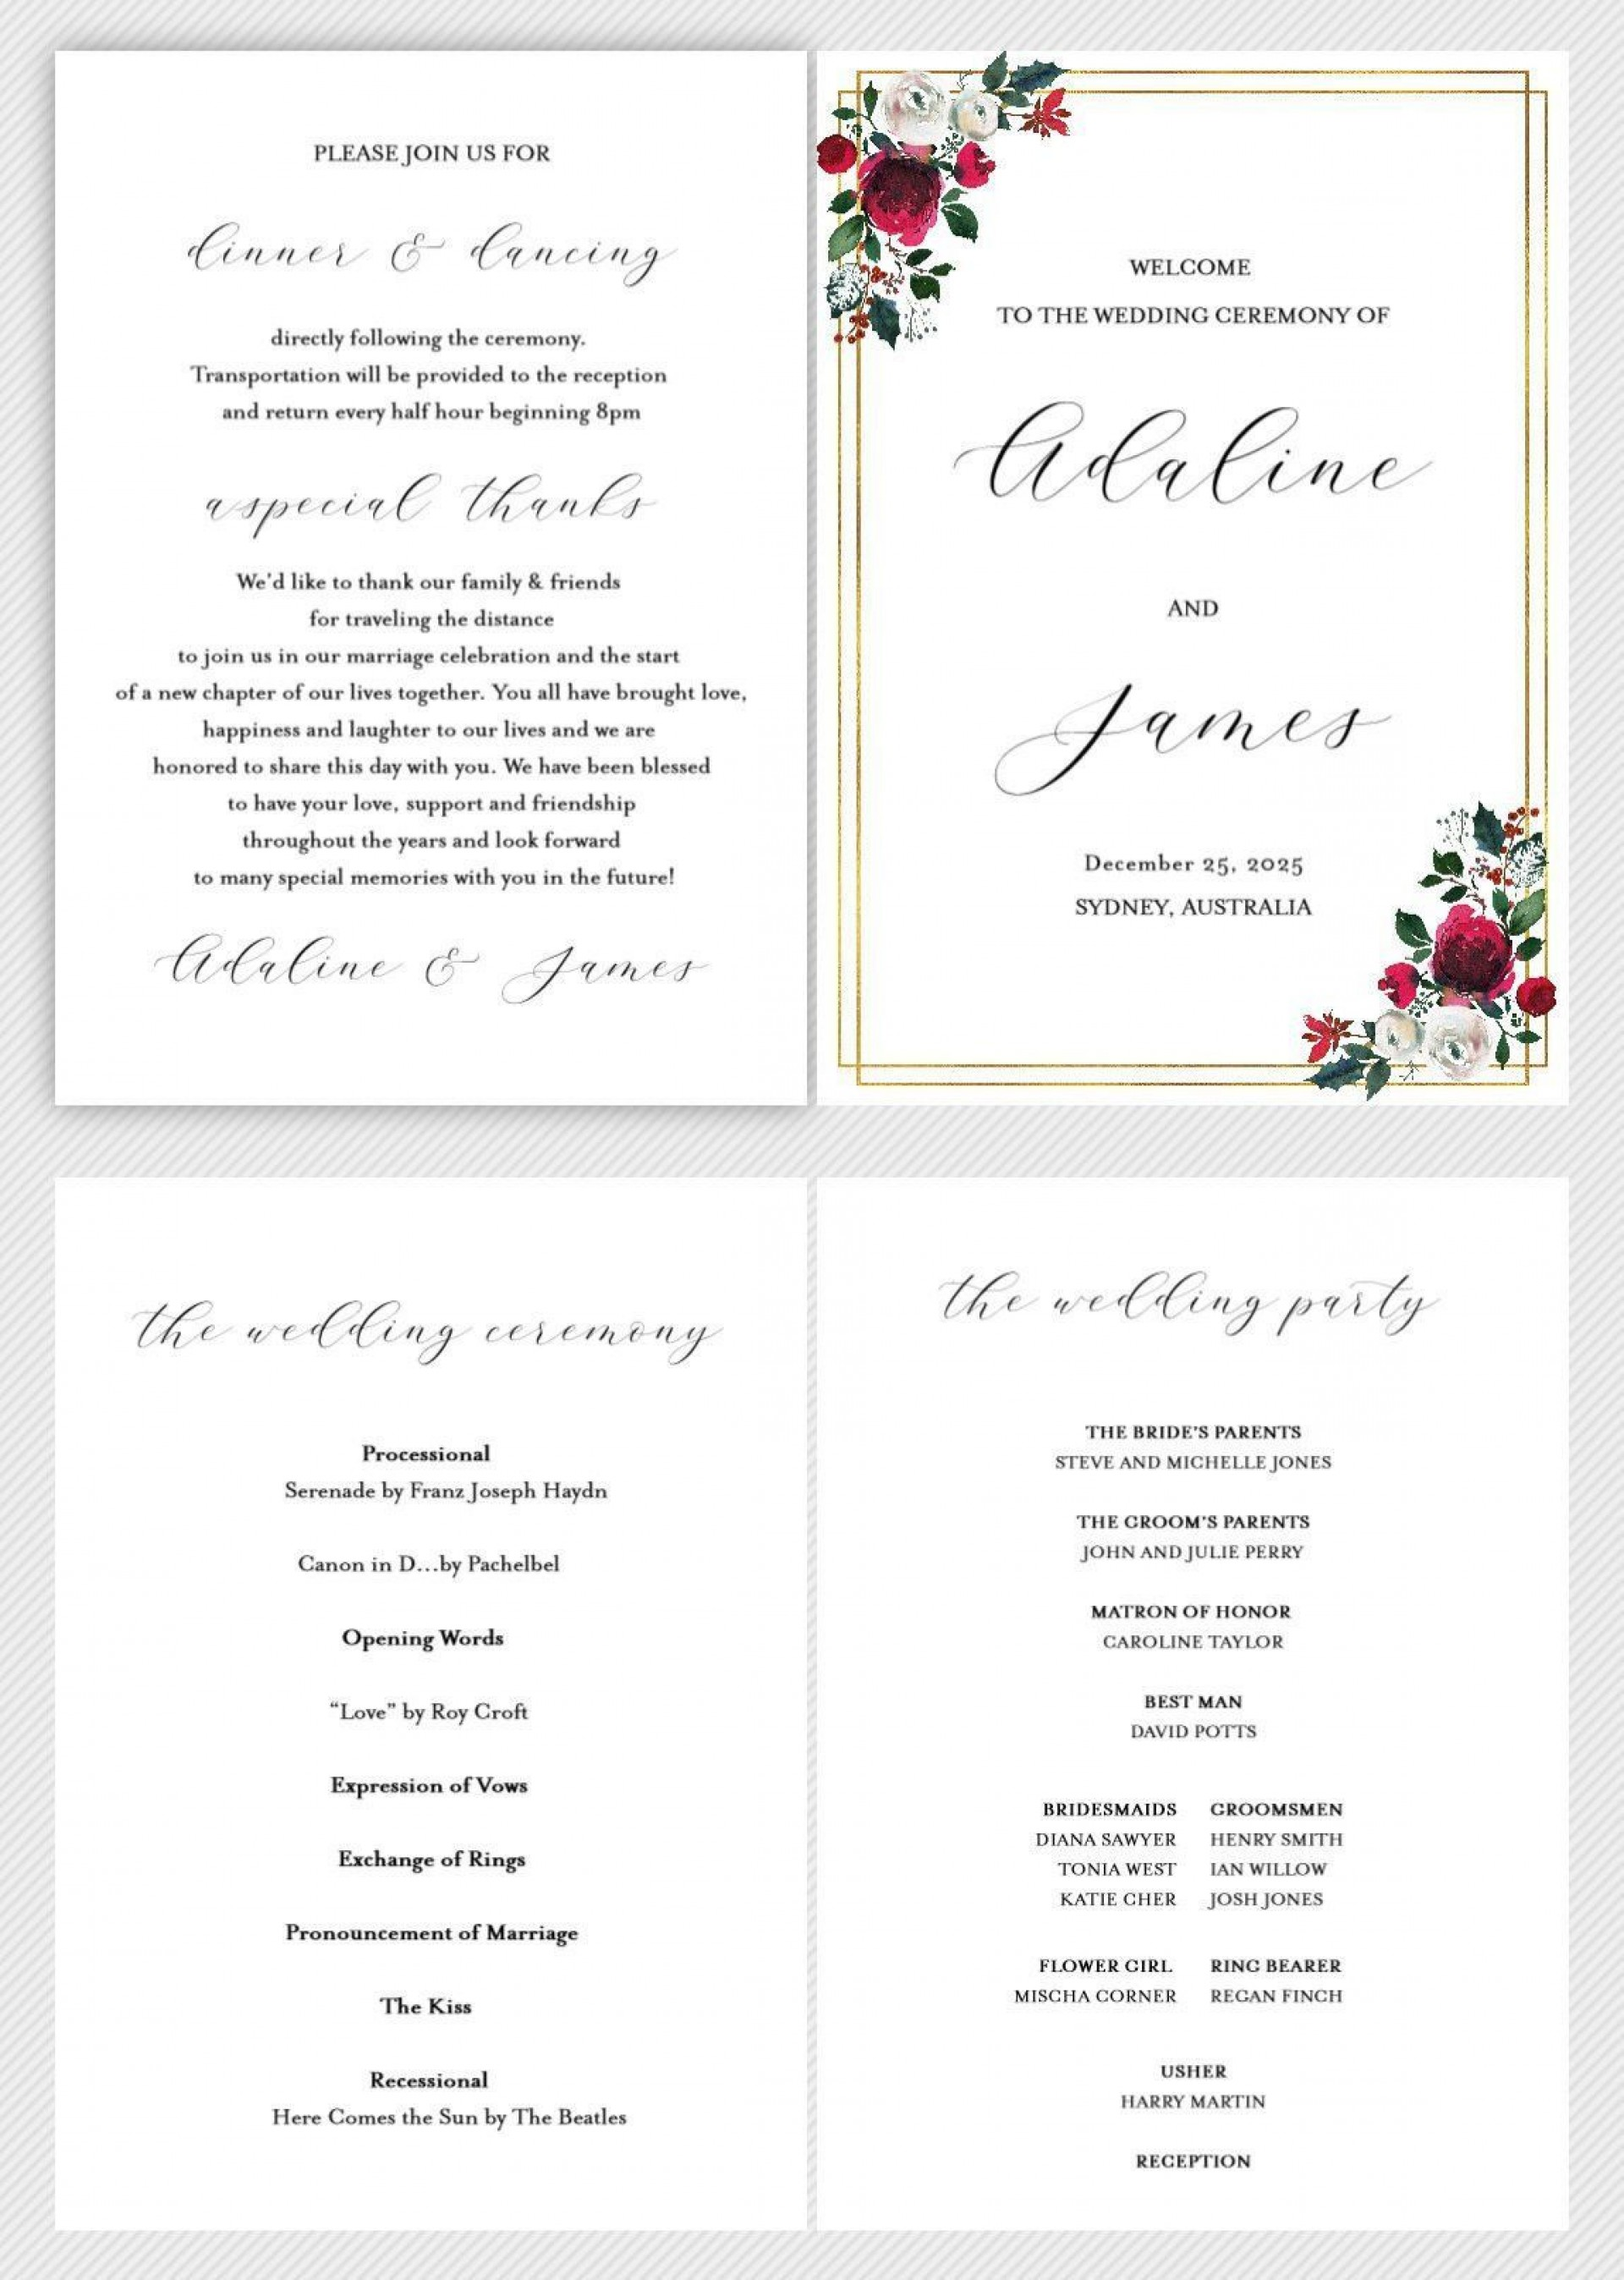 002 Simple Wedding Order Of Service Template Free Idea  Front Cover Download Church1920